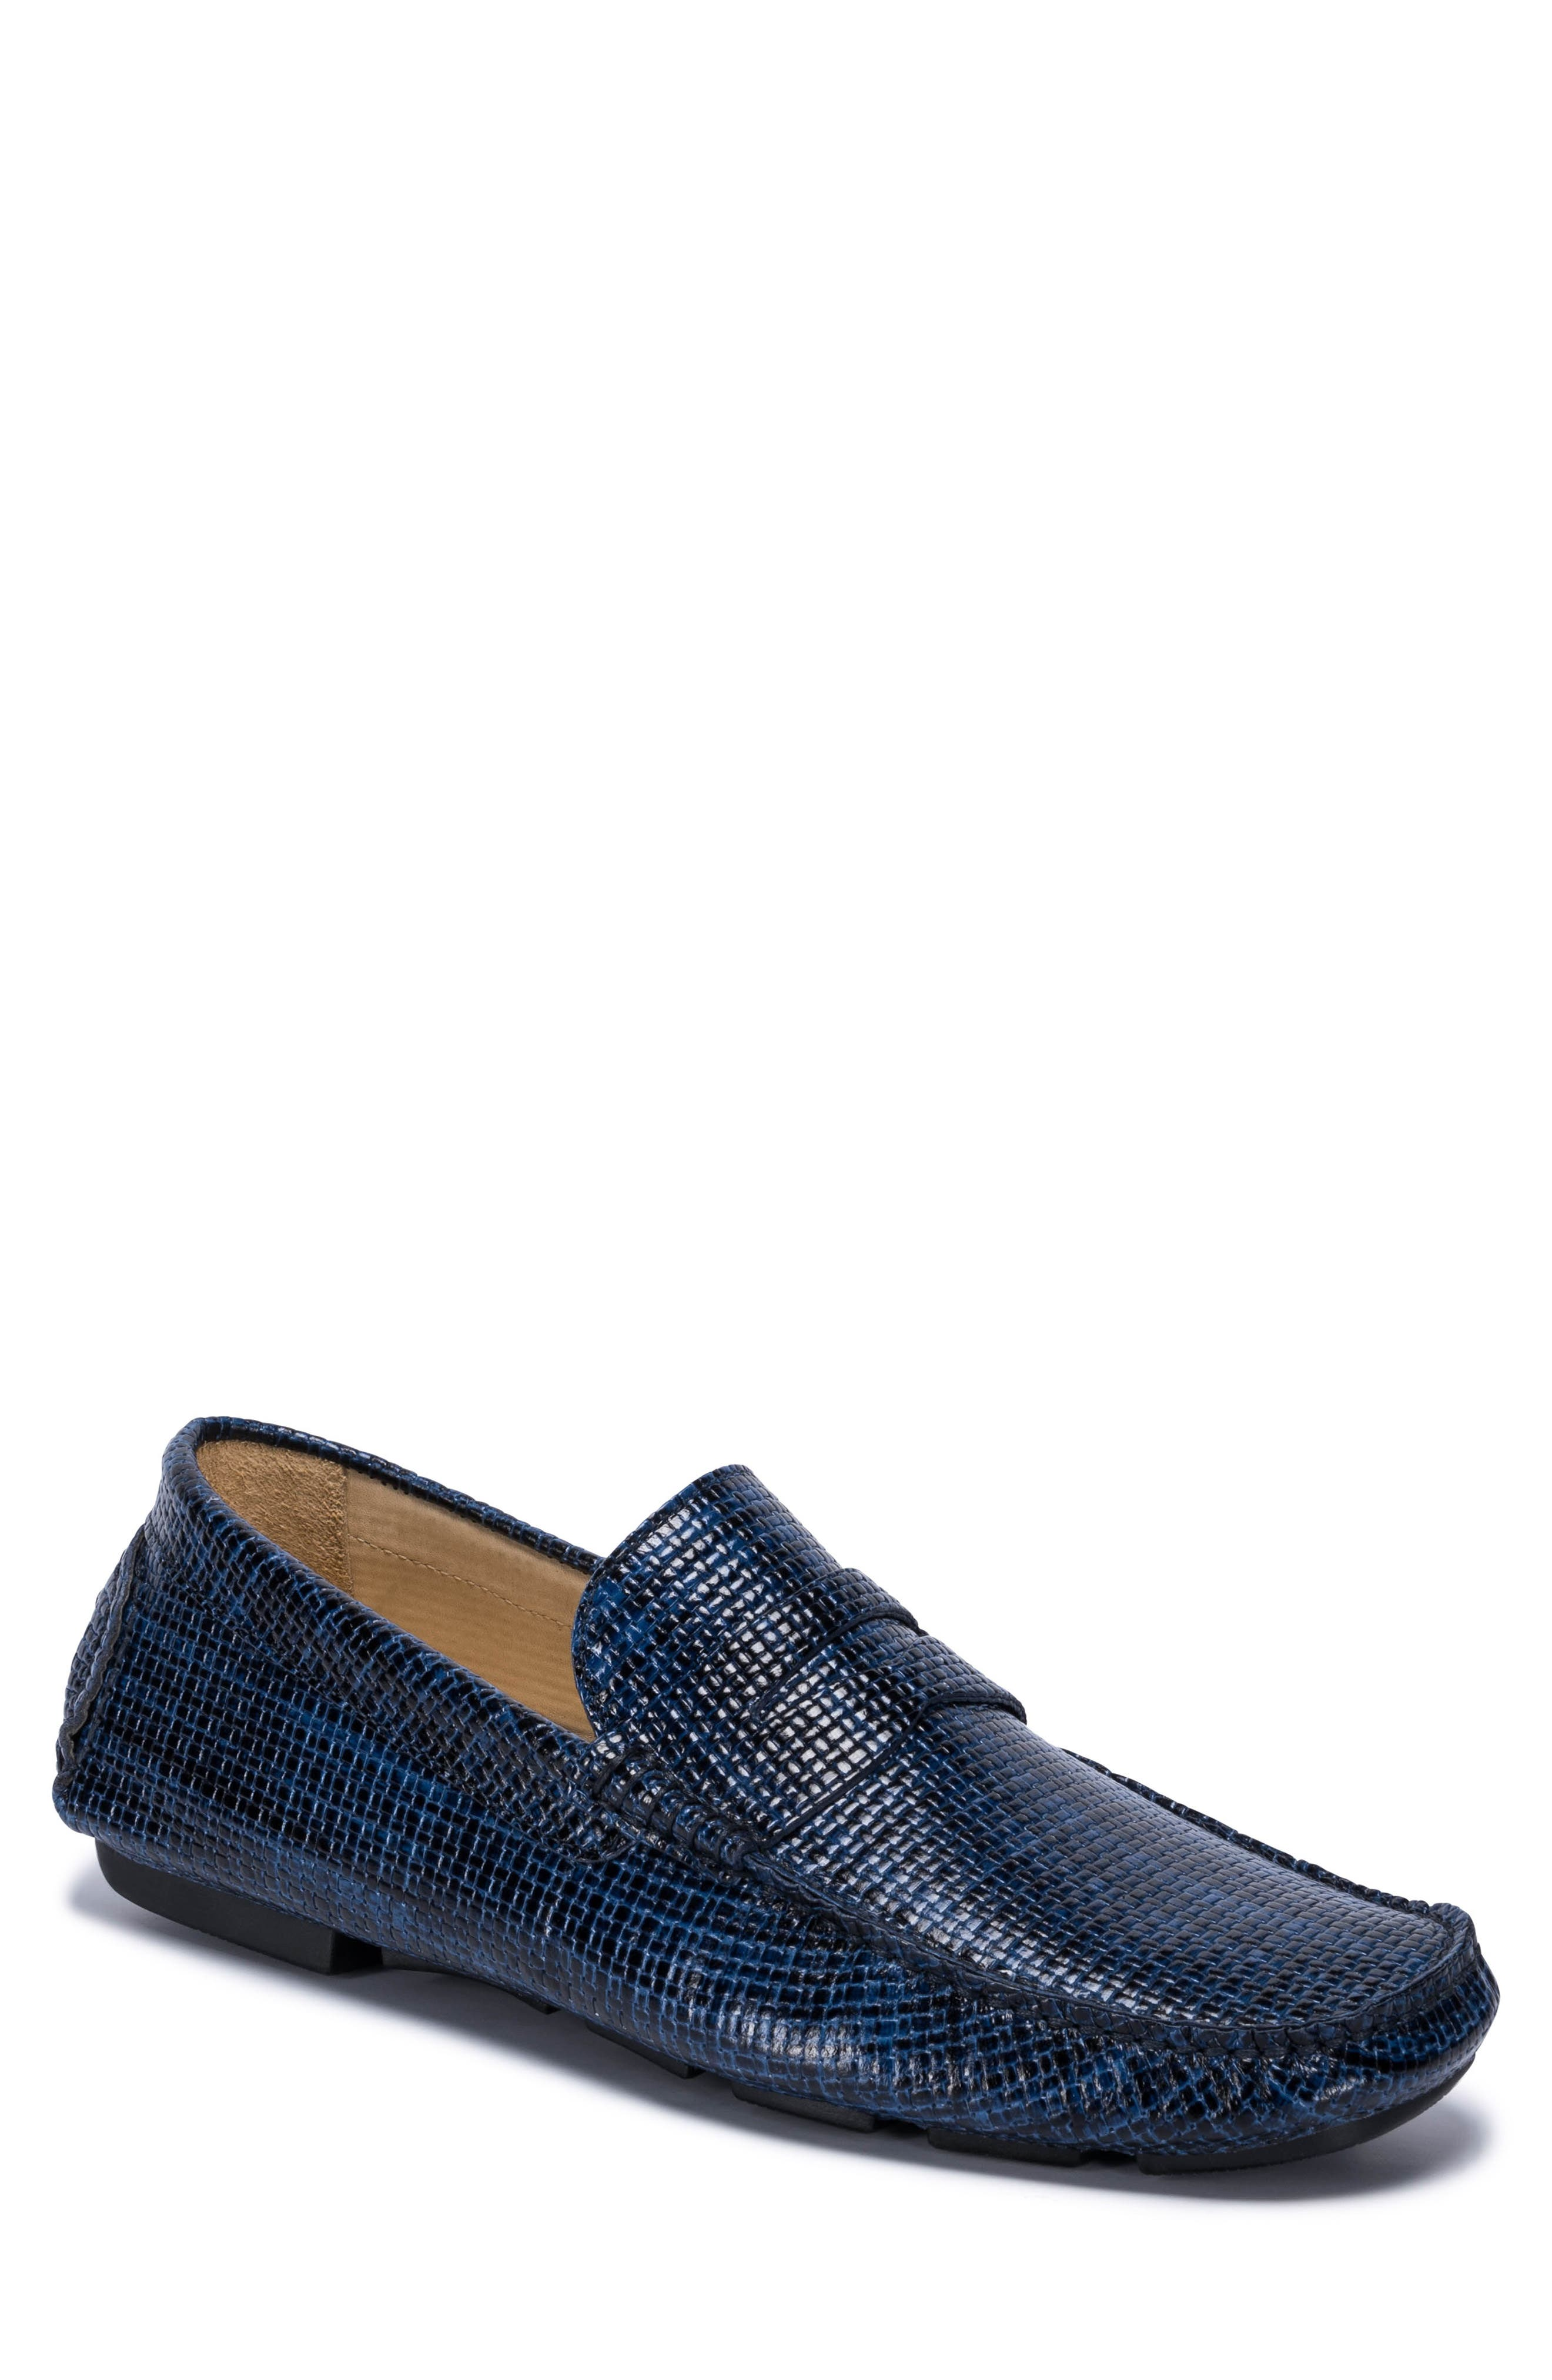 Montalcino Driving Penny Loafer,                             Main thumbnail 1, color,                             BLUE LEATHER